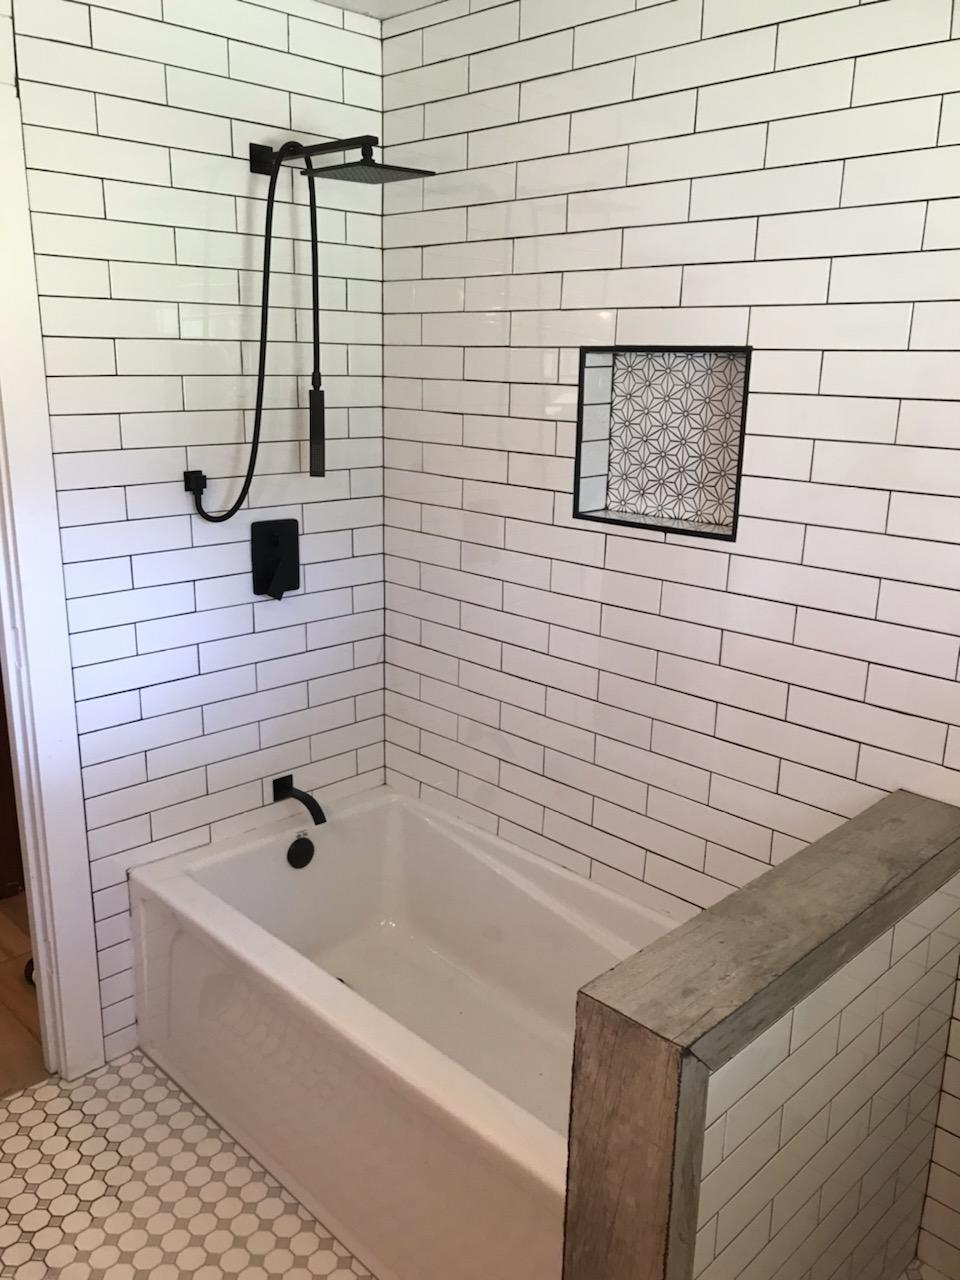 Remodeling | Tacoma, WA | All Painting LLC